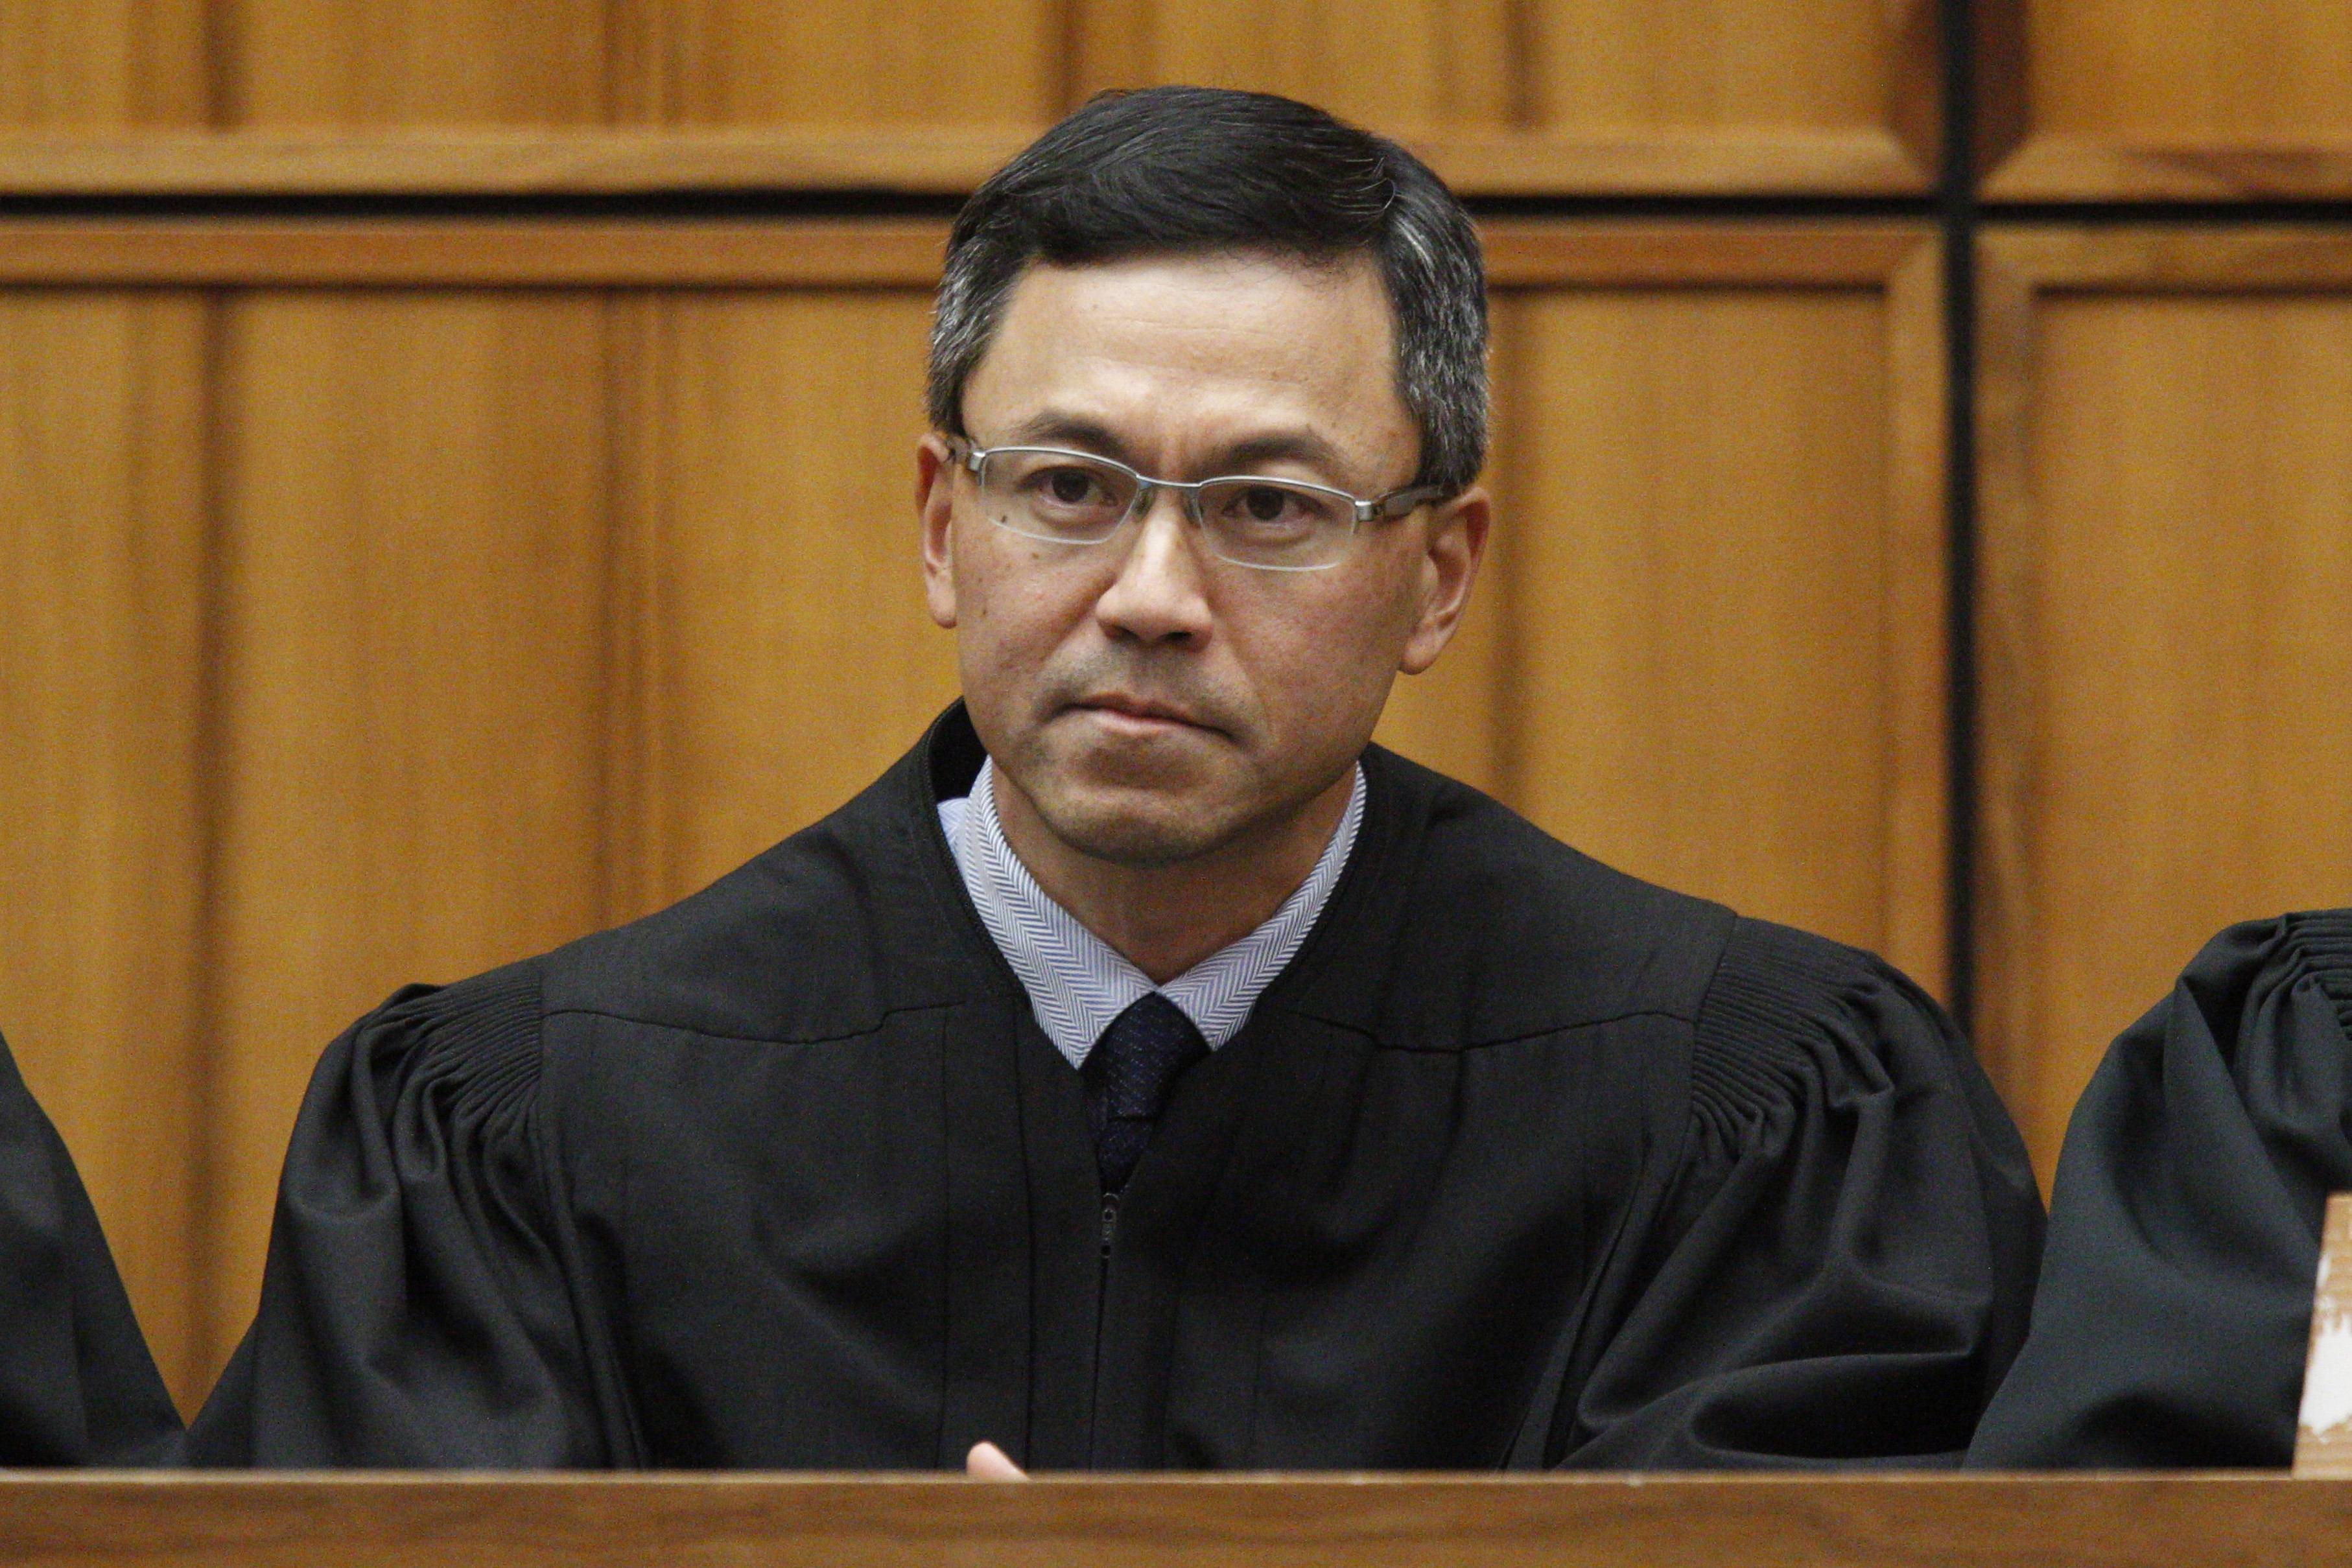 FILE - This Dec. 2015 file photo shows U.S. District Judge Derrick Watson in Honolulu. Watson on Tuesday, Oct. 17, 2017, blocked the Trump administration from enforcing its latest travel ban, just hours before it was set to take effect. (George Lee /The Star-Advertiser via AP, File)